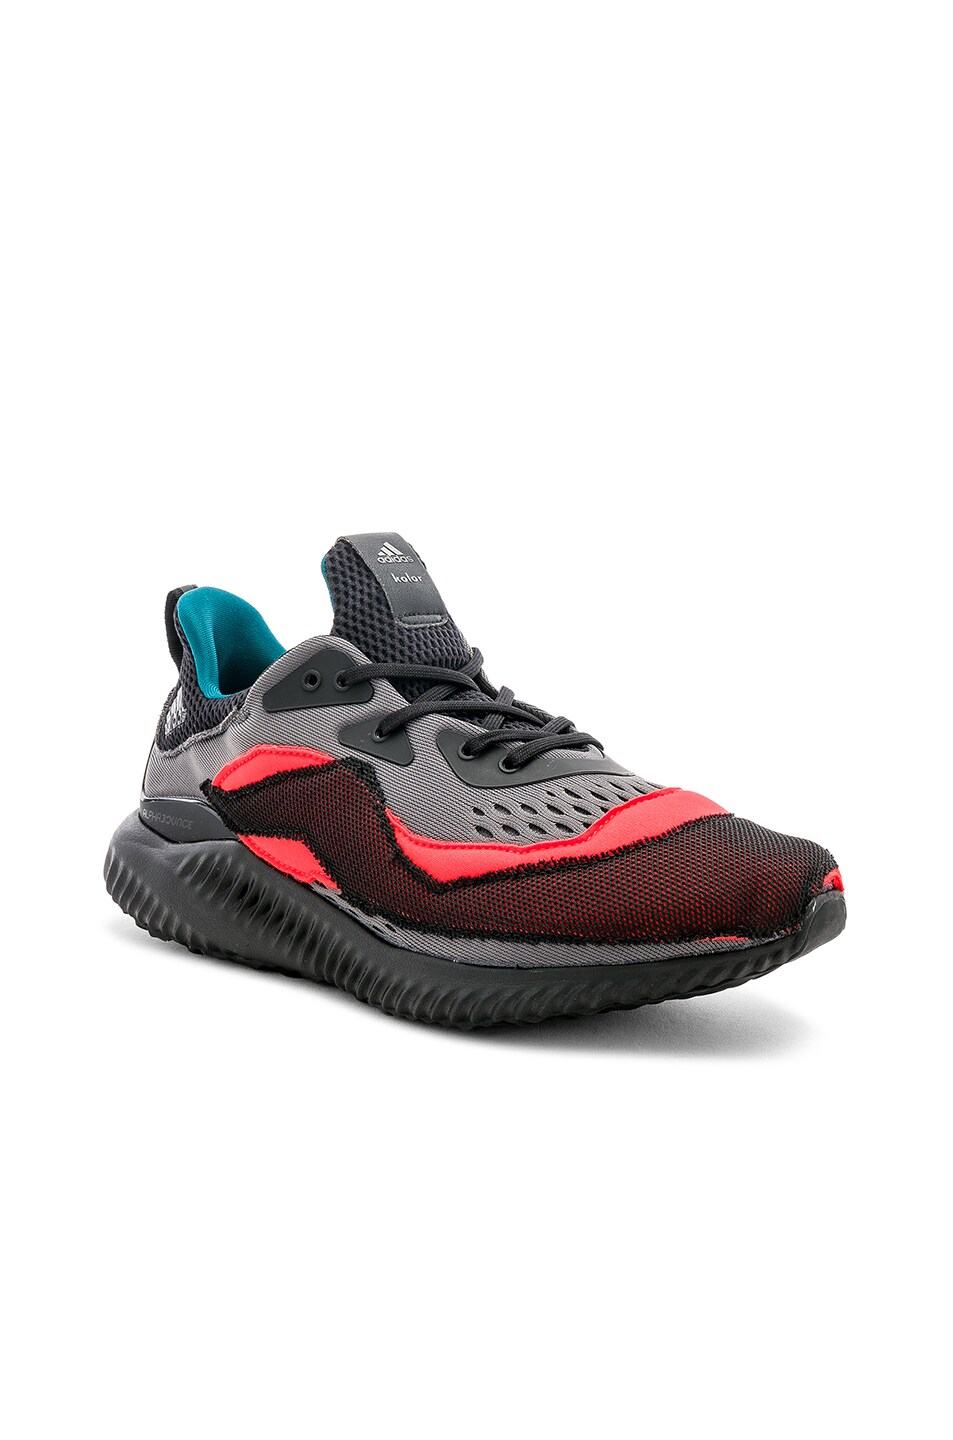 9e27b7408 adidas by Kolor kolor x adidas Alpha Bounce in Hi-Res Red   Core ...